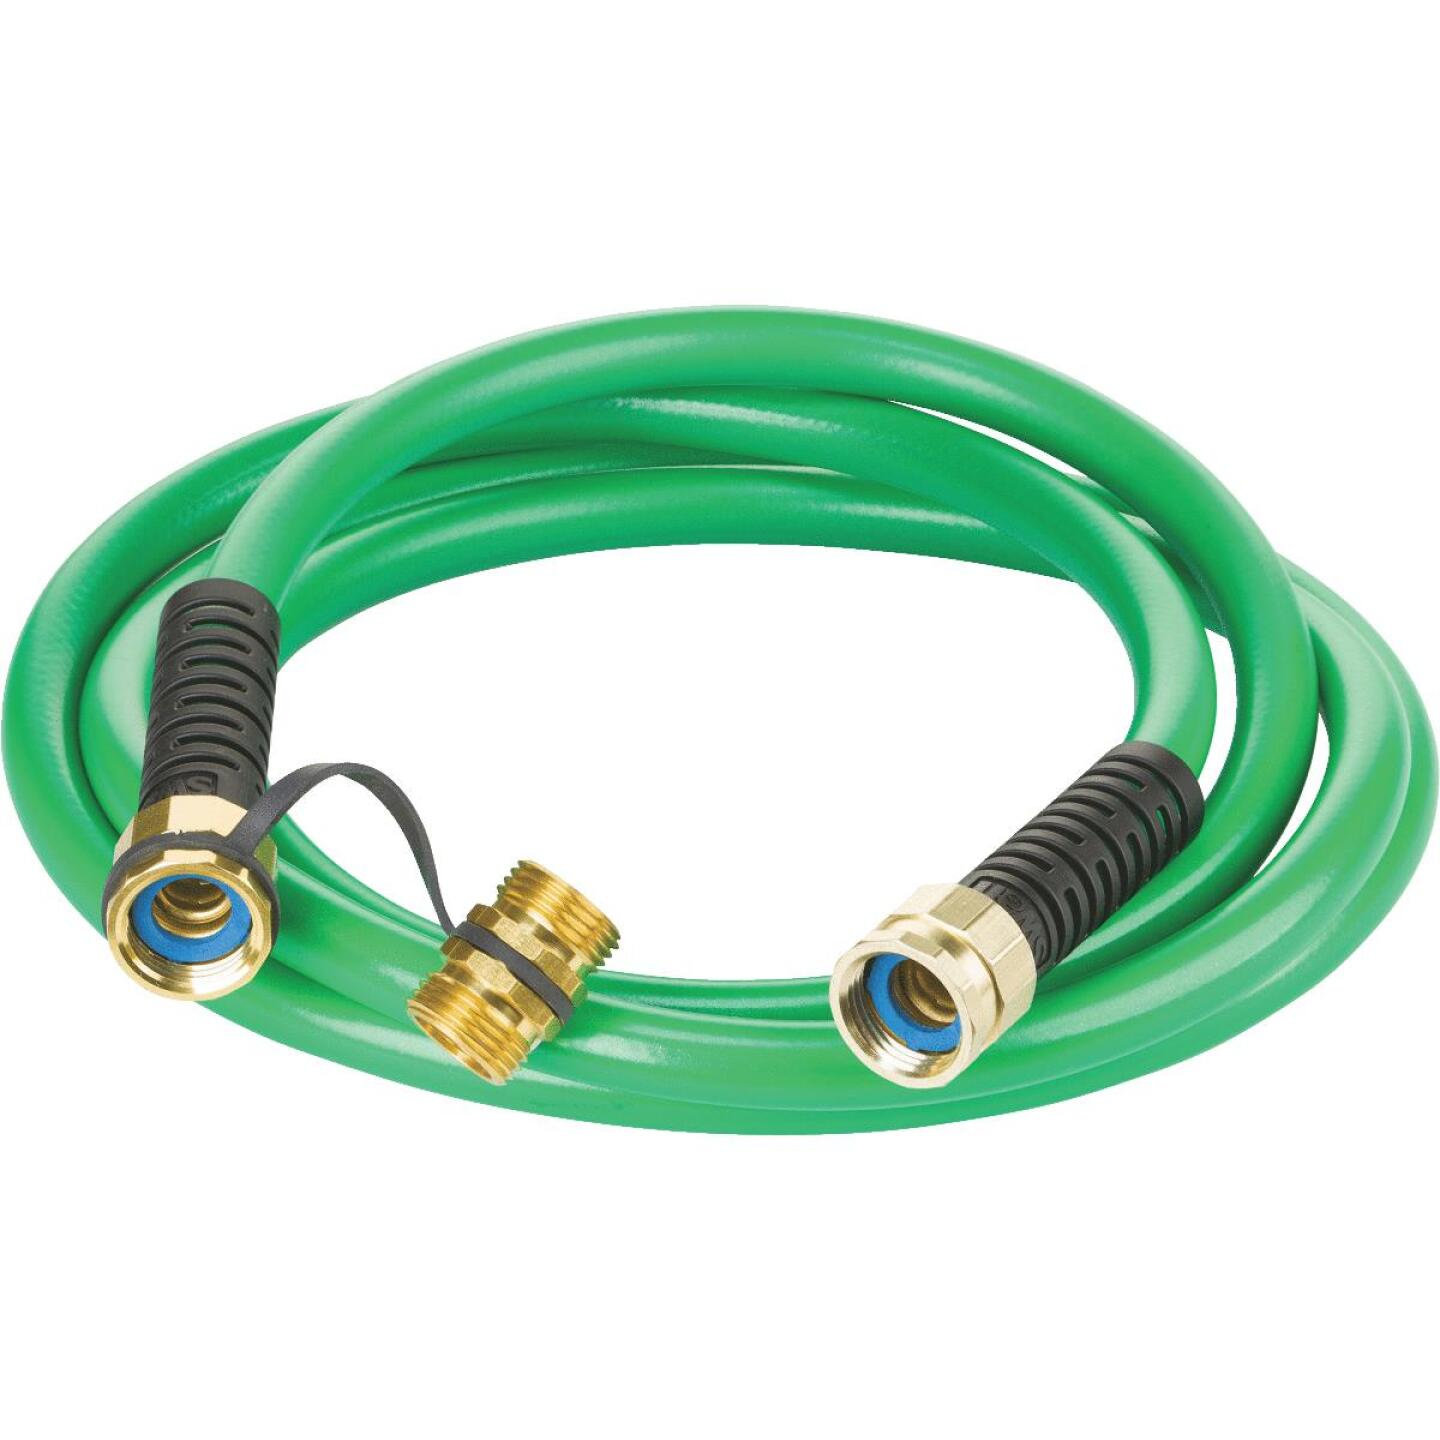 Element 1/2 In. Dia. x 10 Ft. L. Drinking Water Safe Universal Leader Hose with Female Couplings Image 3